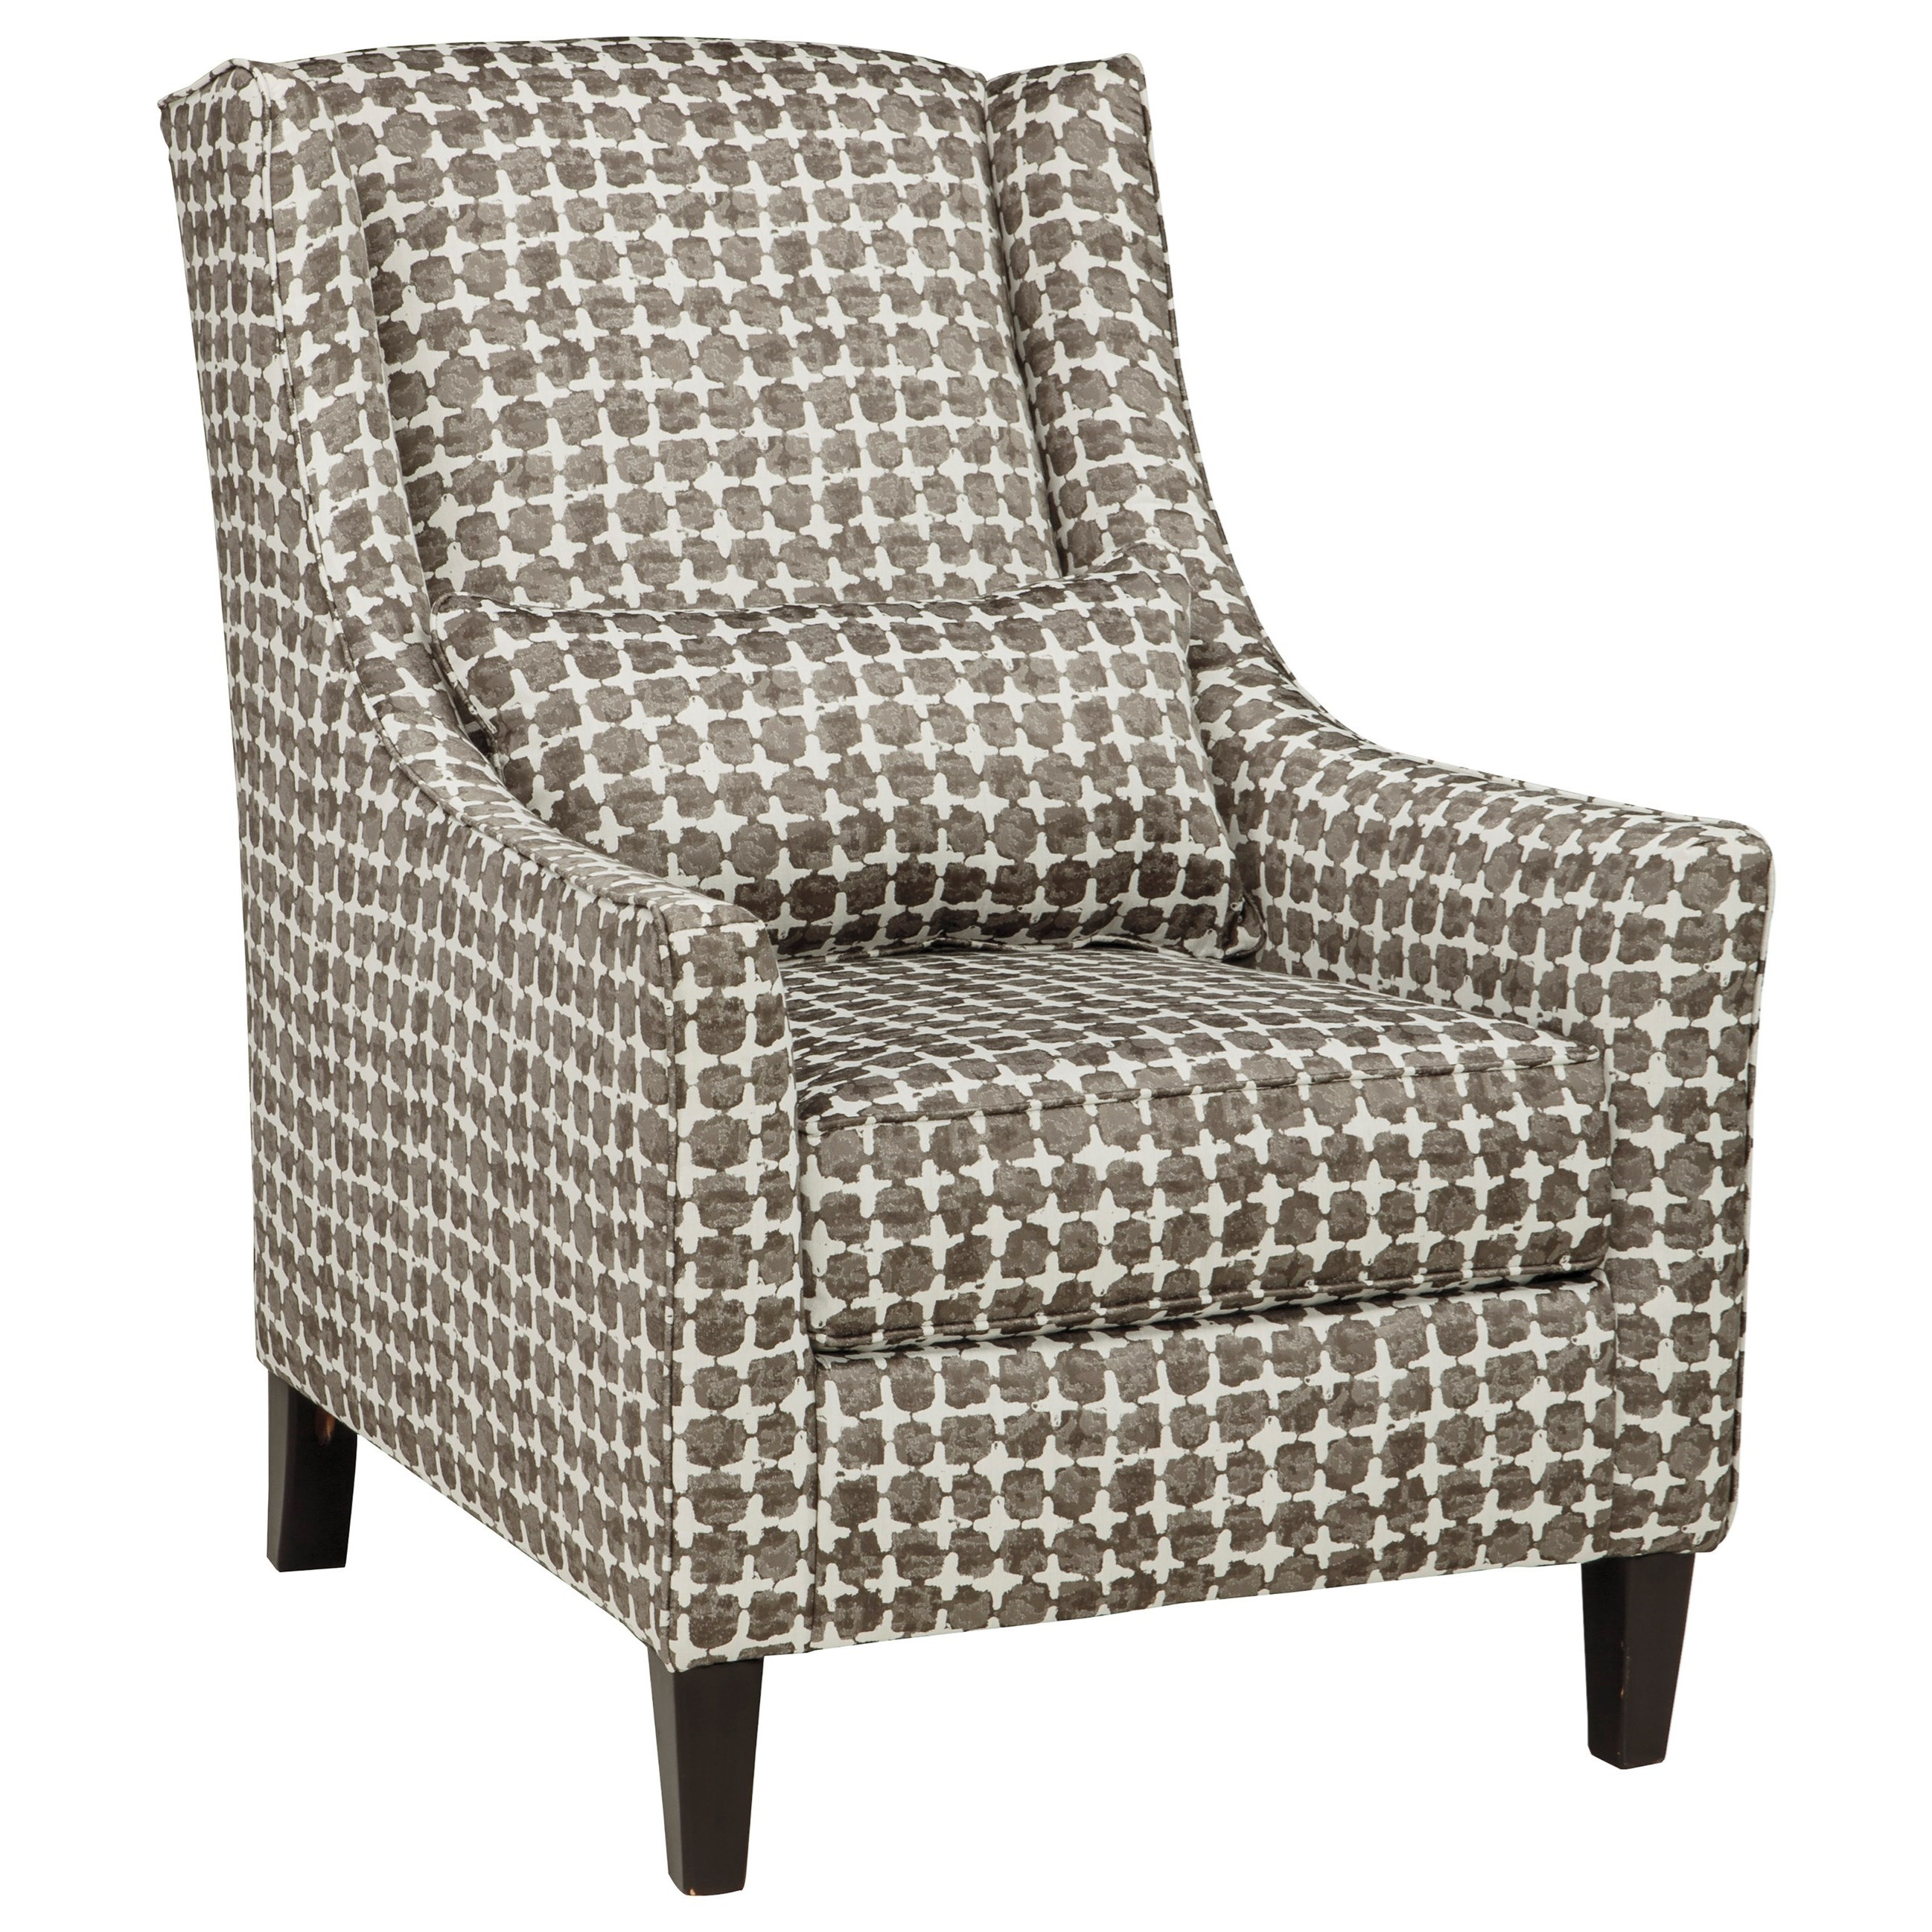 Benchcraft Lainier Accent Chair - Item Number: 5420221